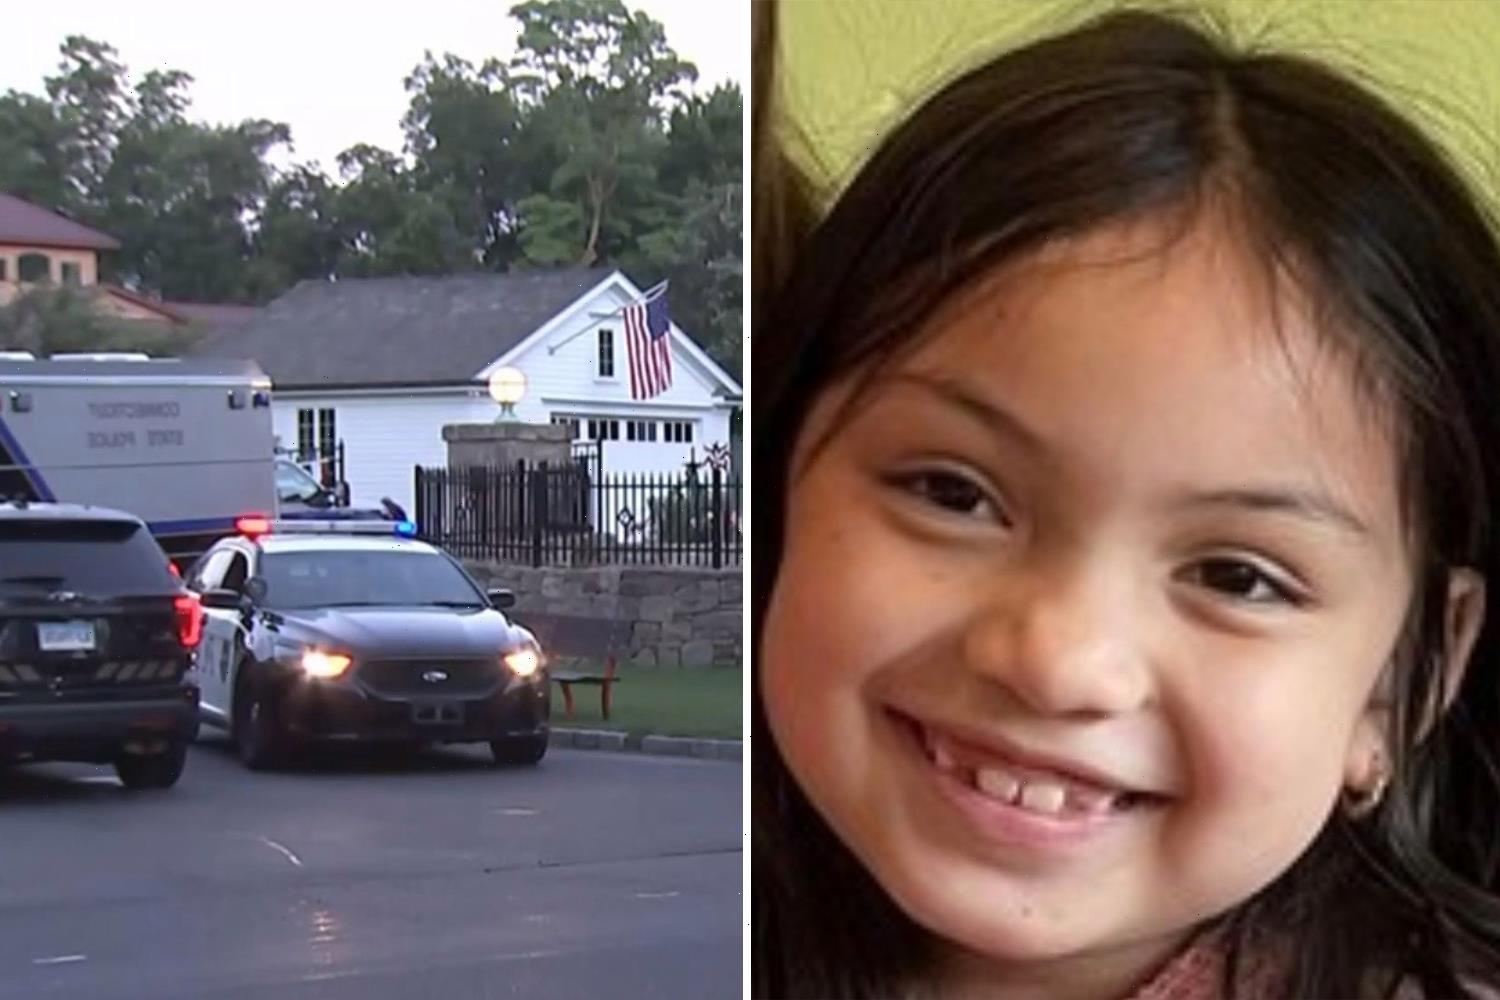 Girl, 7, 'drowned by Connecticut mom who then stabbed herself in murder-suicide' remembered for 'captivating sweetness'